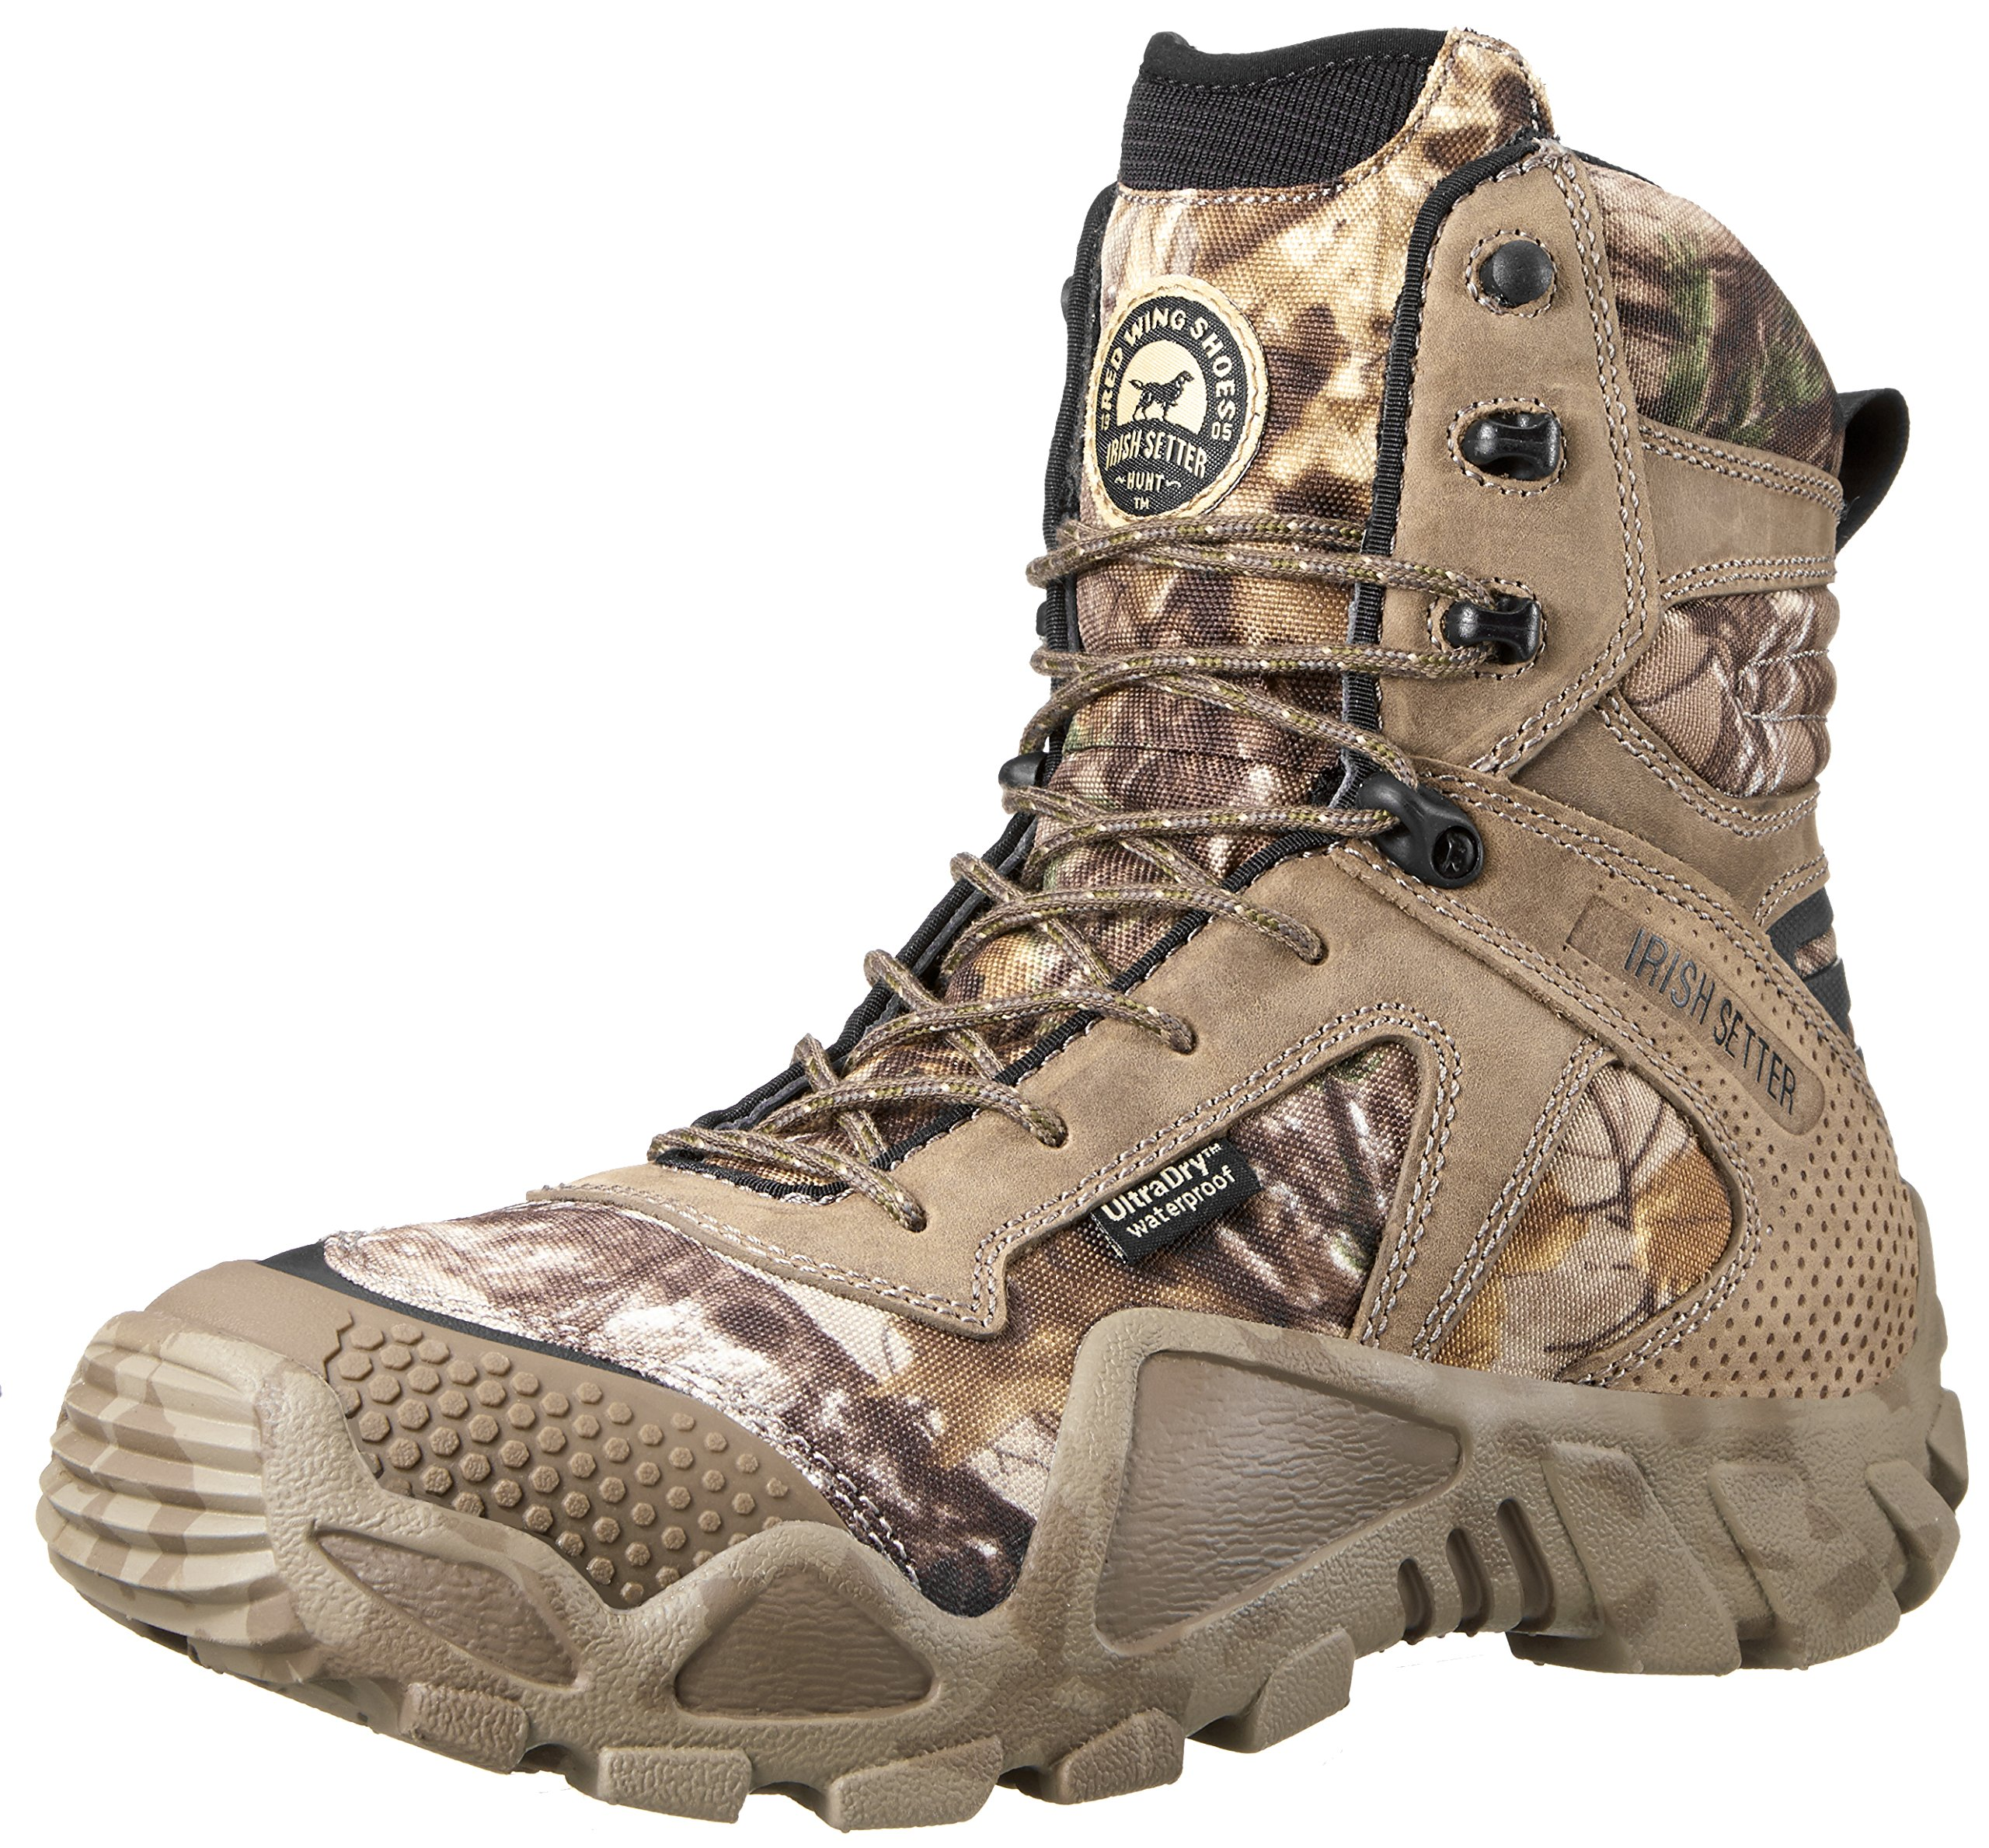 Irish Setter Men's 2870 Vaprtrek Waterproof 8'' Hunting Boot, Realtree Xtra Camouflage,10 D US by Irish Setter